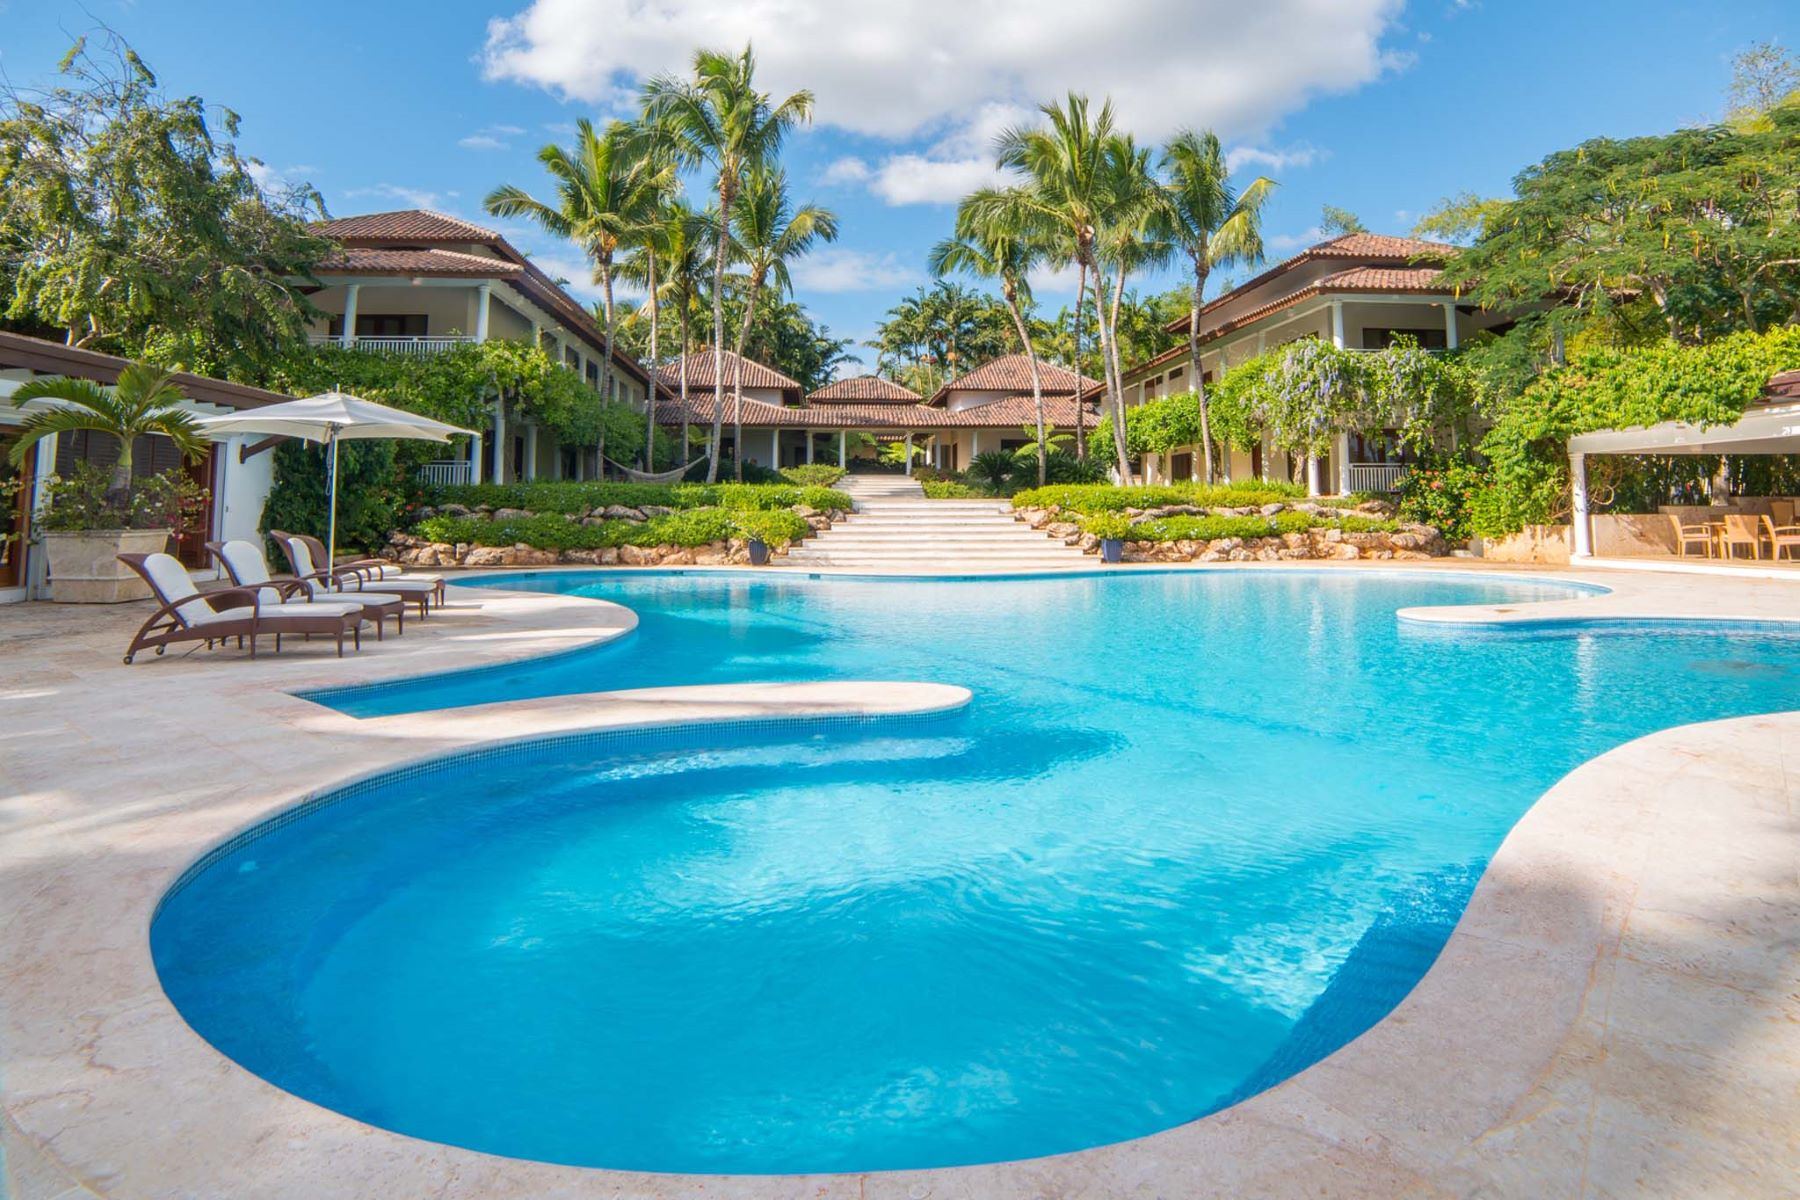 Single Family Homes for Sale at Vista Chavon # 16 - Majestic Caribbean Estate boasting Extraordinary Ocean Views Casa De Campo, La Romana Dominican Republic